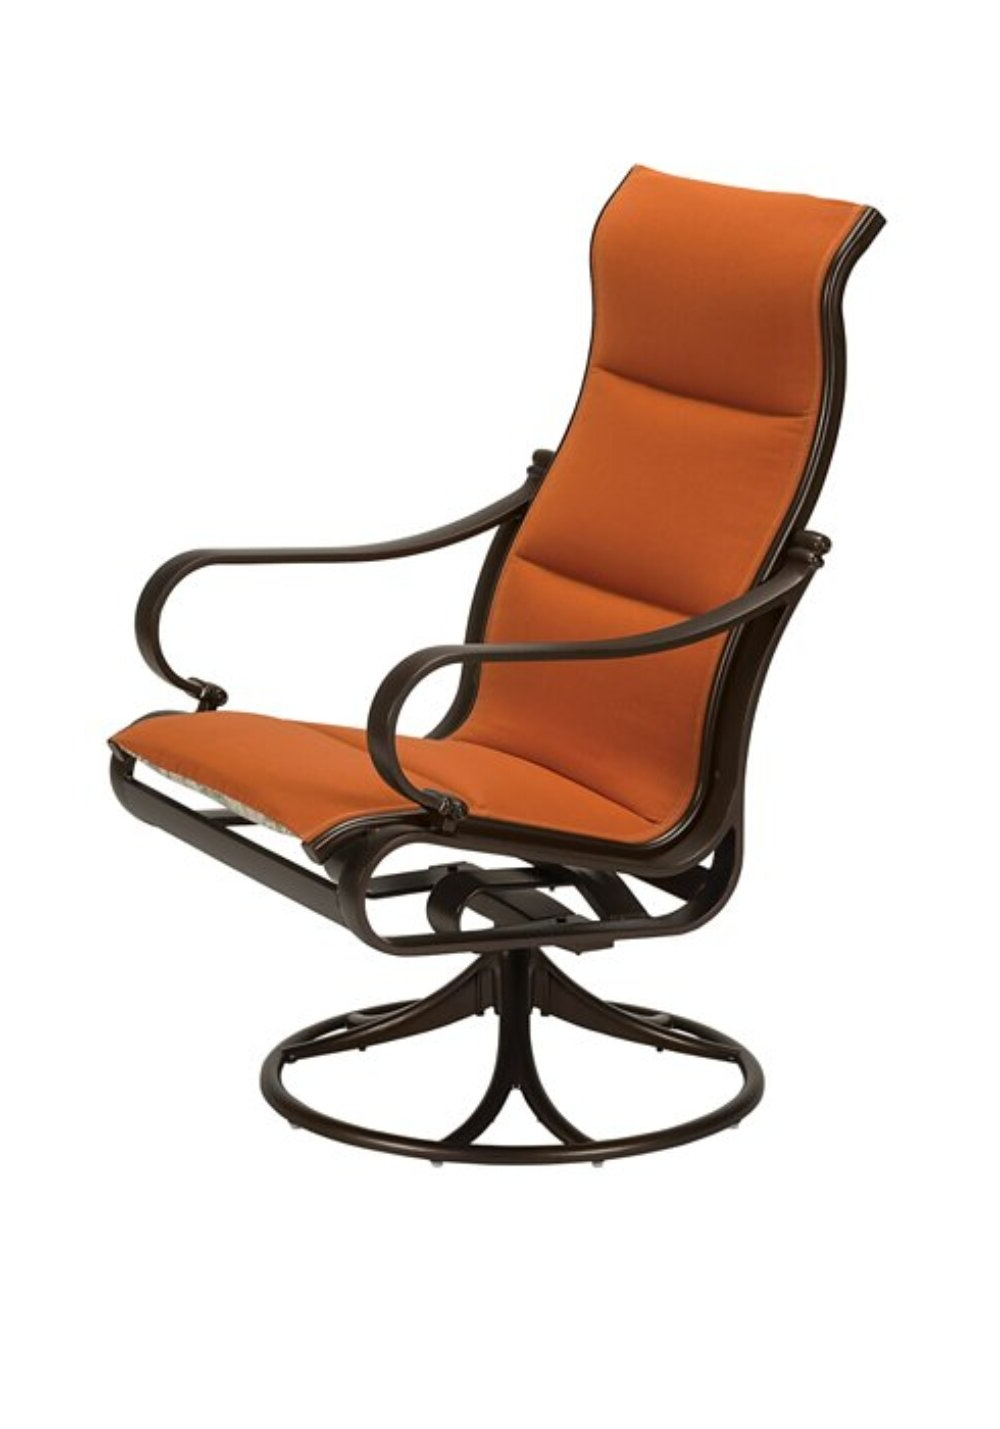 Padded Sling High Back Swivel Chairs Within 2020 Torino Padded Sling High Back Swivel Rocking Chair With Cushion (View 9 of 30)